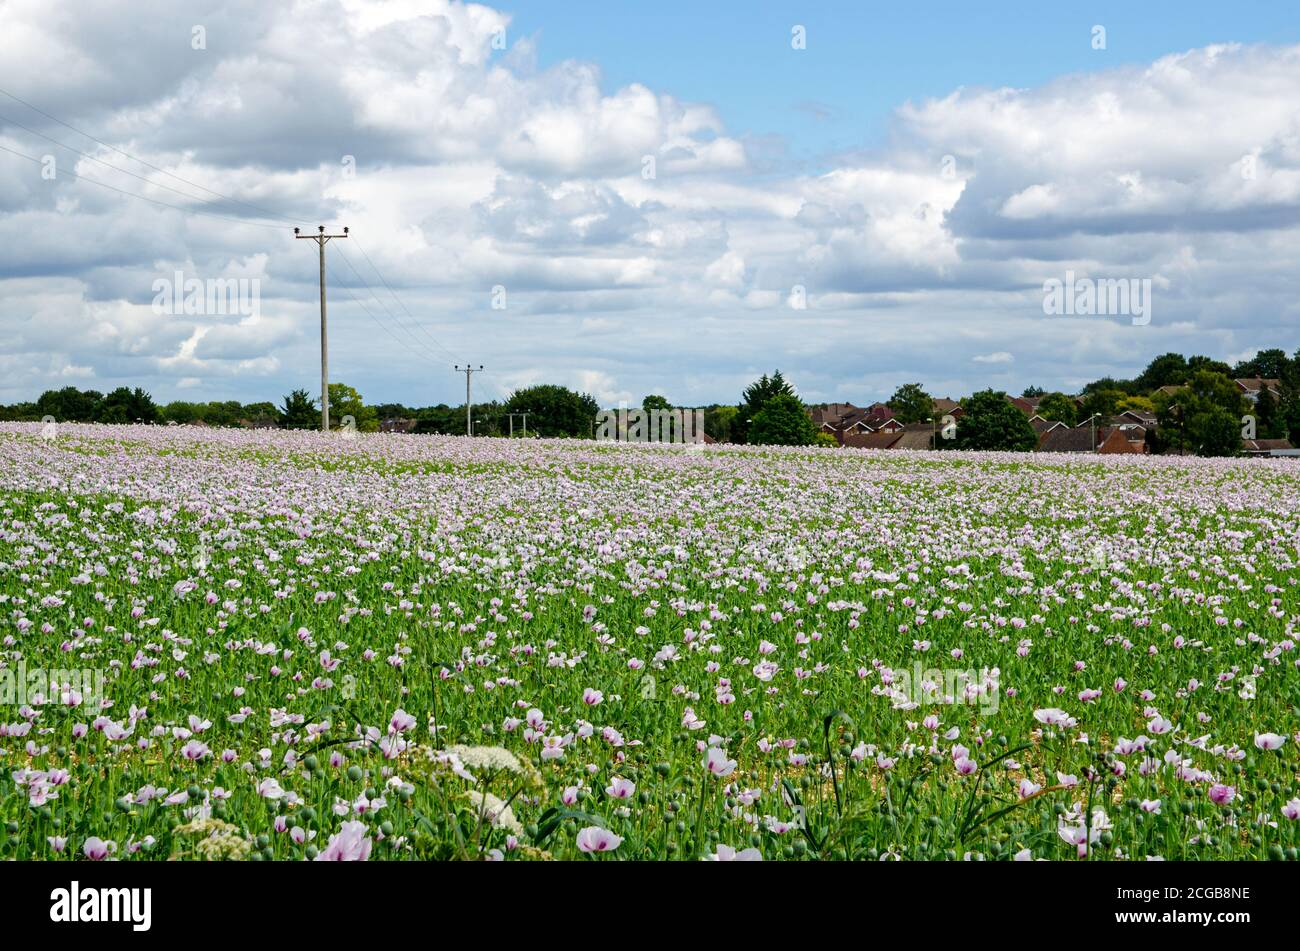 A field of cultivated opium poppies growing in Basingstoke, Hampshire. Stock Photo